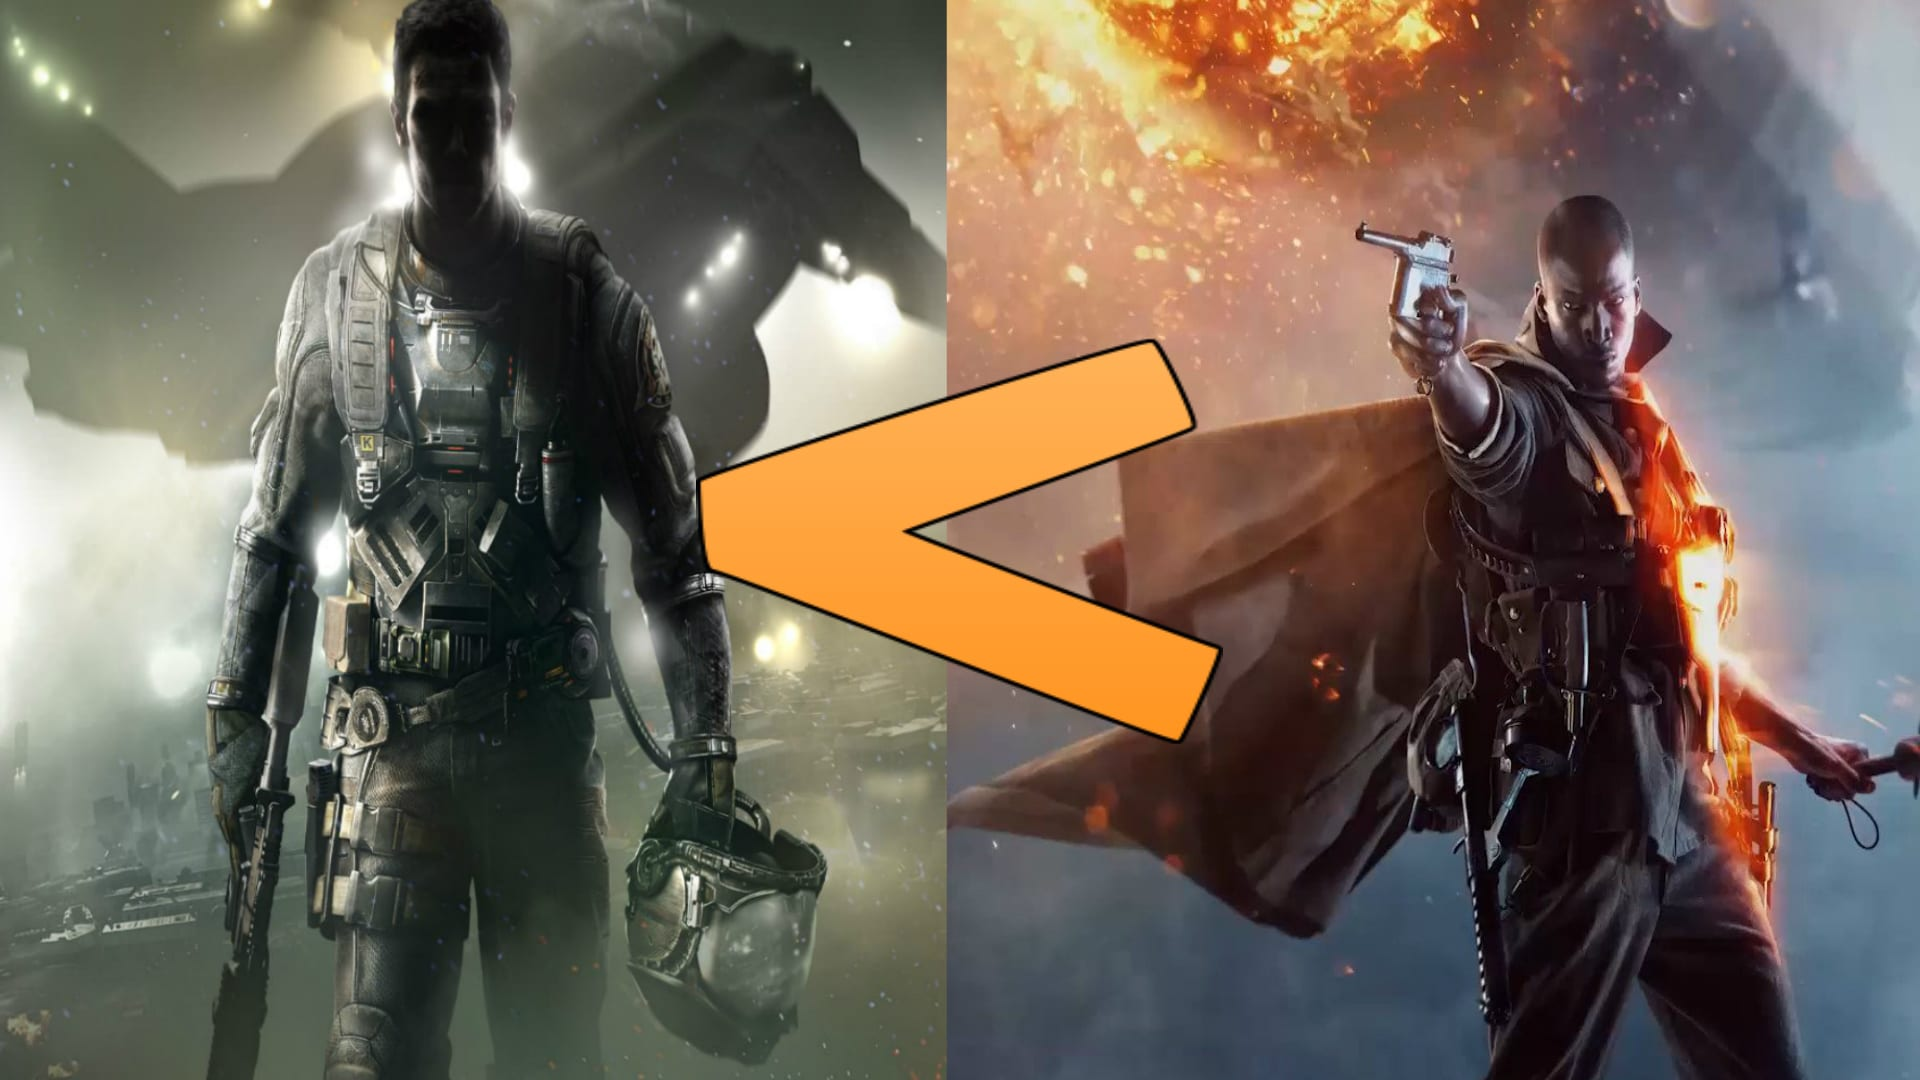 Why Battlefield 1 Will Be Better Than Call of Duty: Infinite Warfare